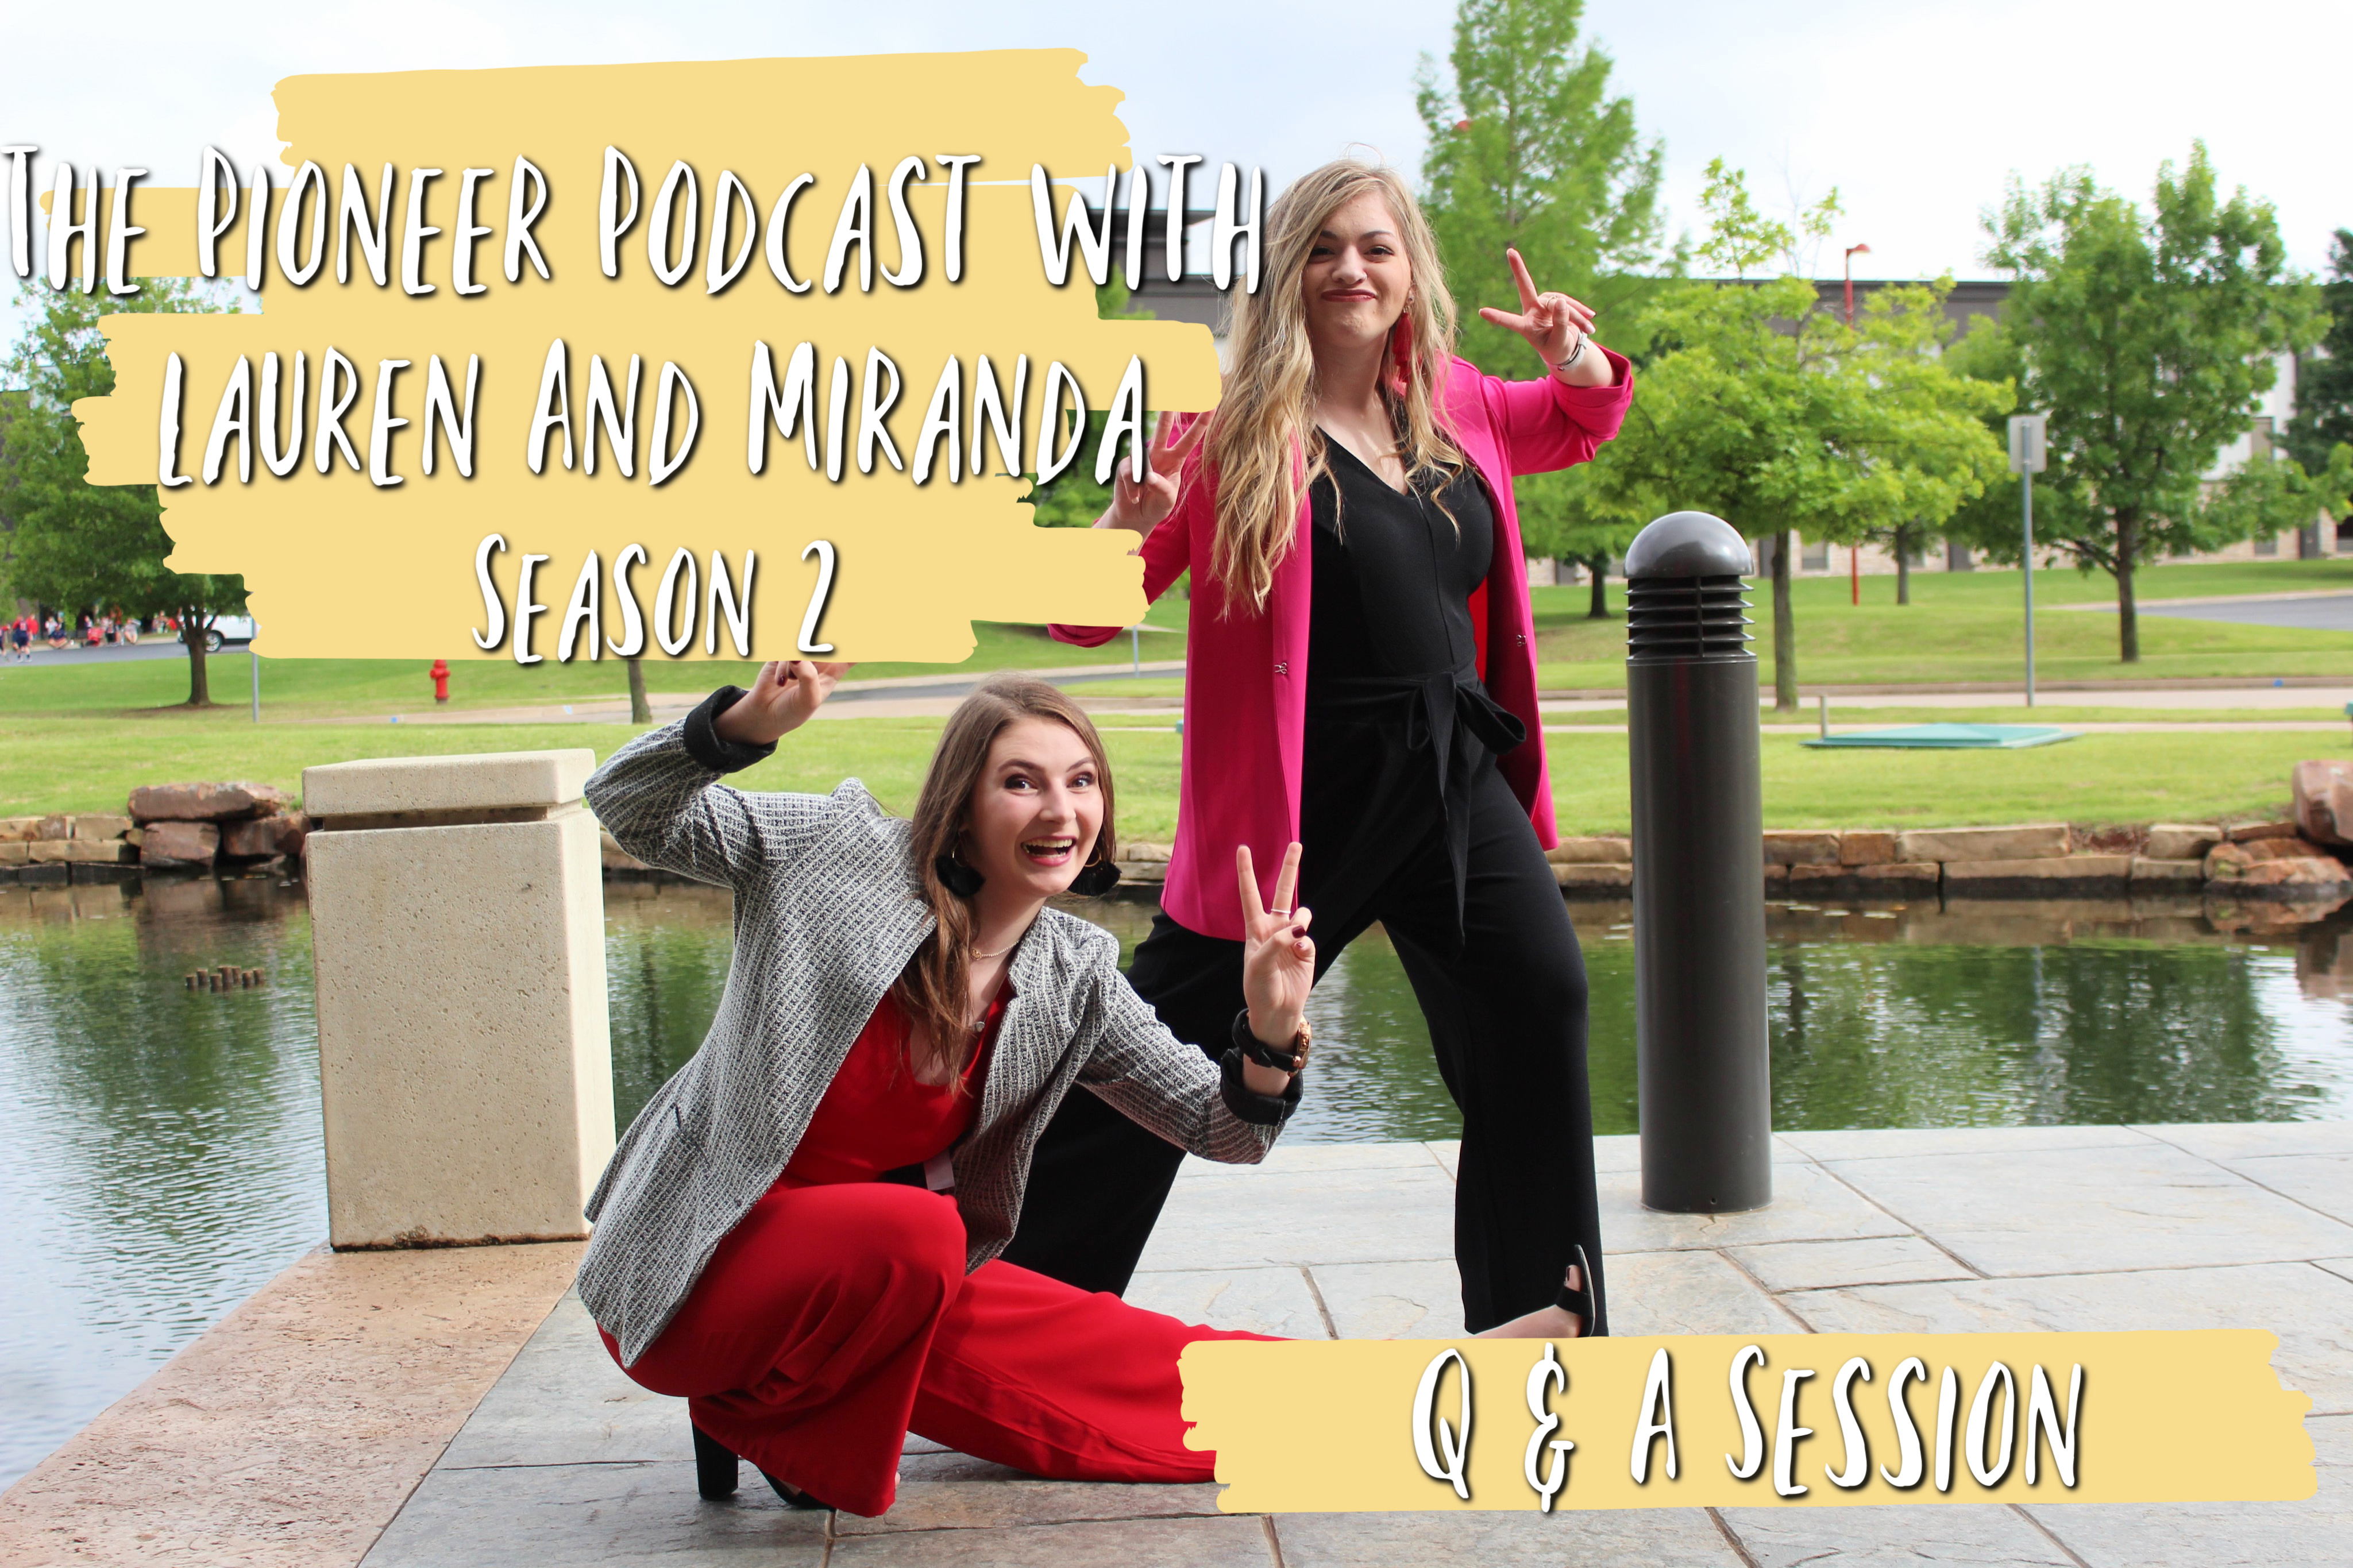 The Pioneer Podcast with Lauren and Miranda, Season 2: Q&A Session